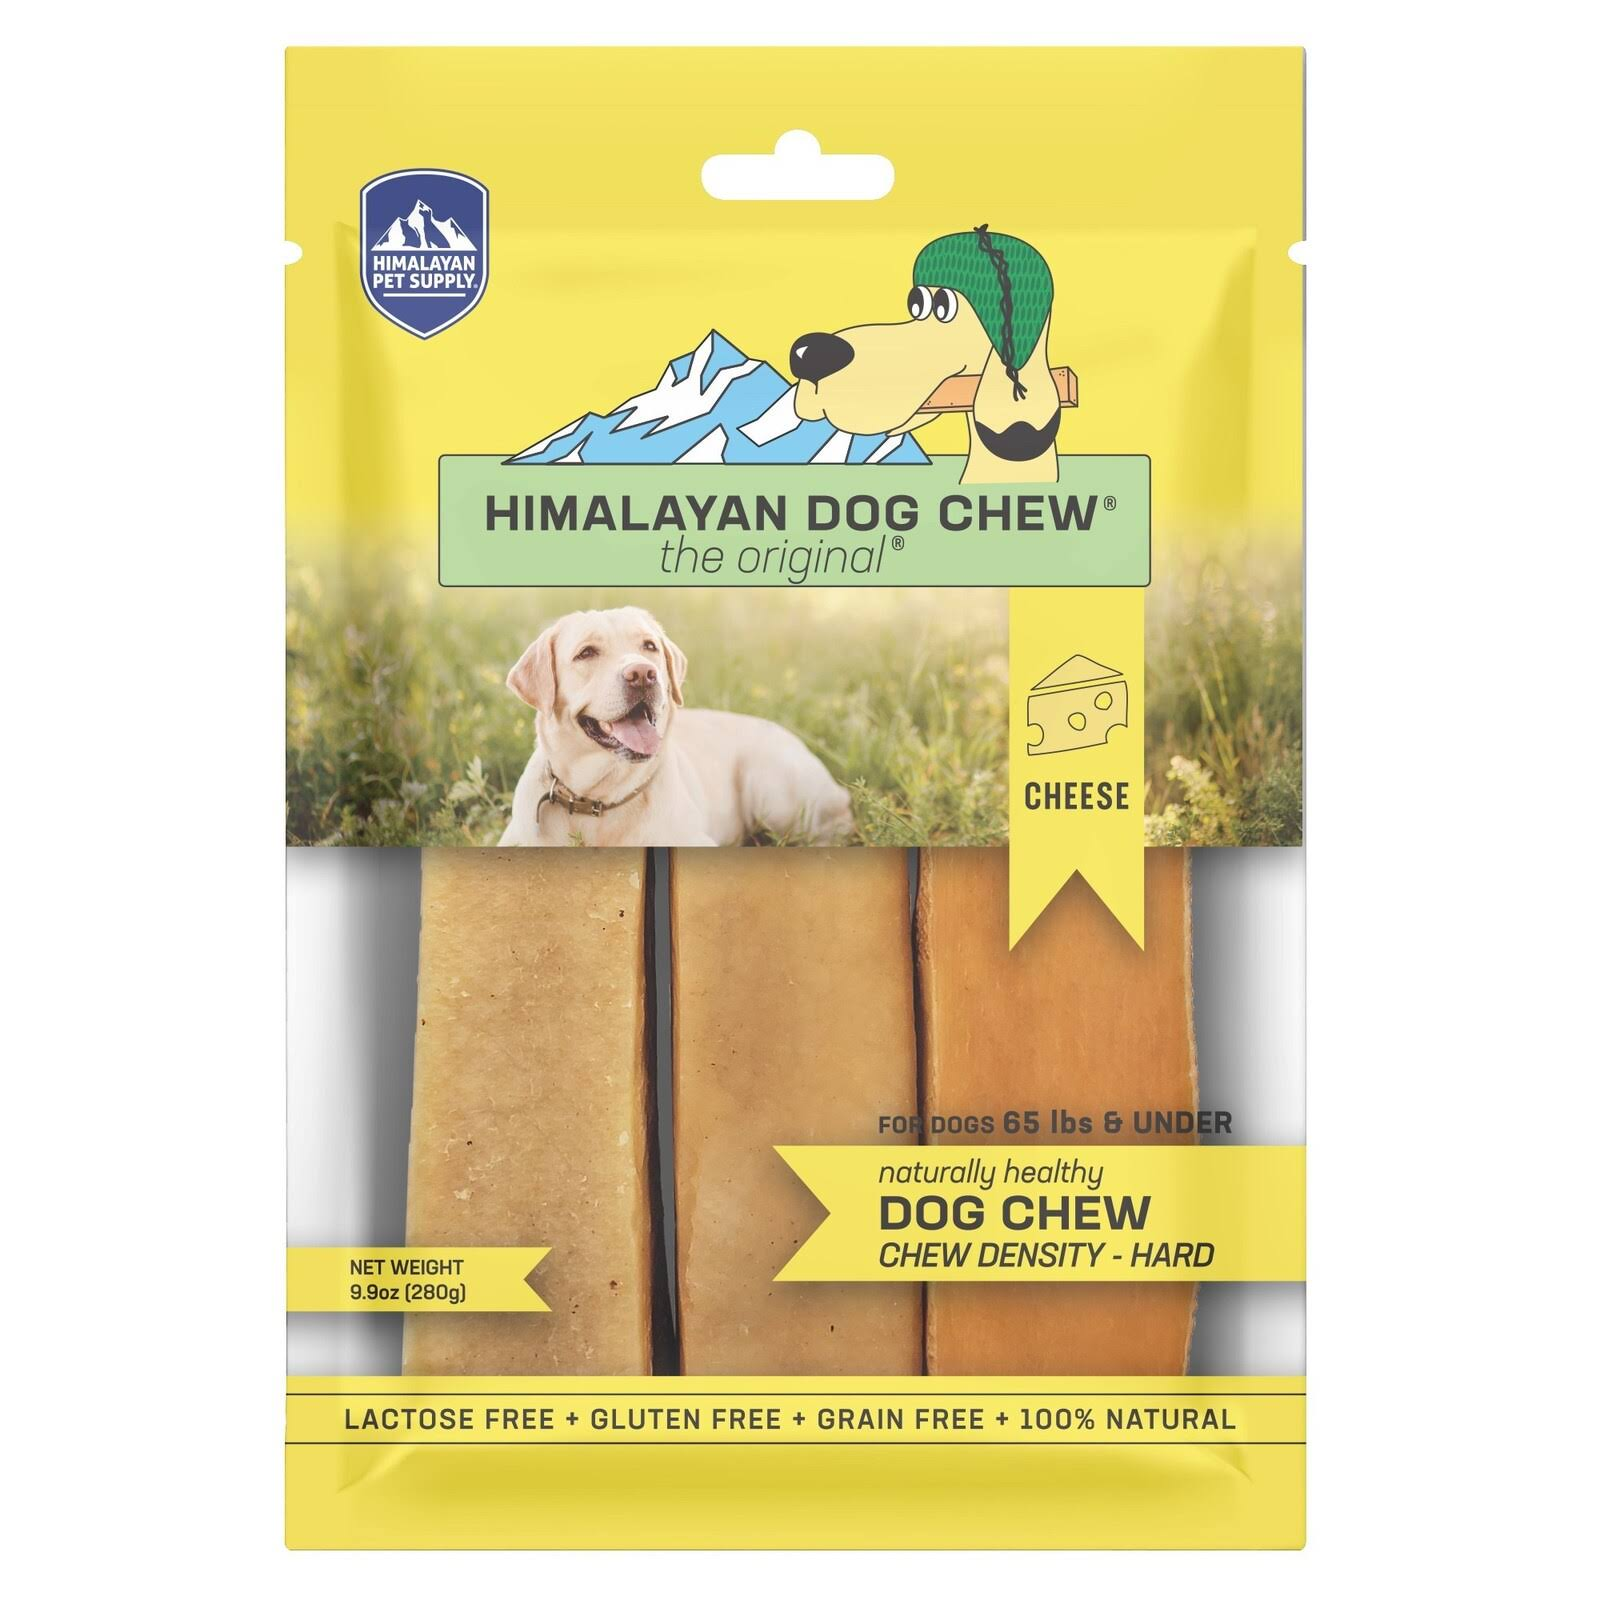 Himalayan Dog Chew Mixed - 10.5oz, 3pcs